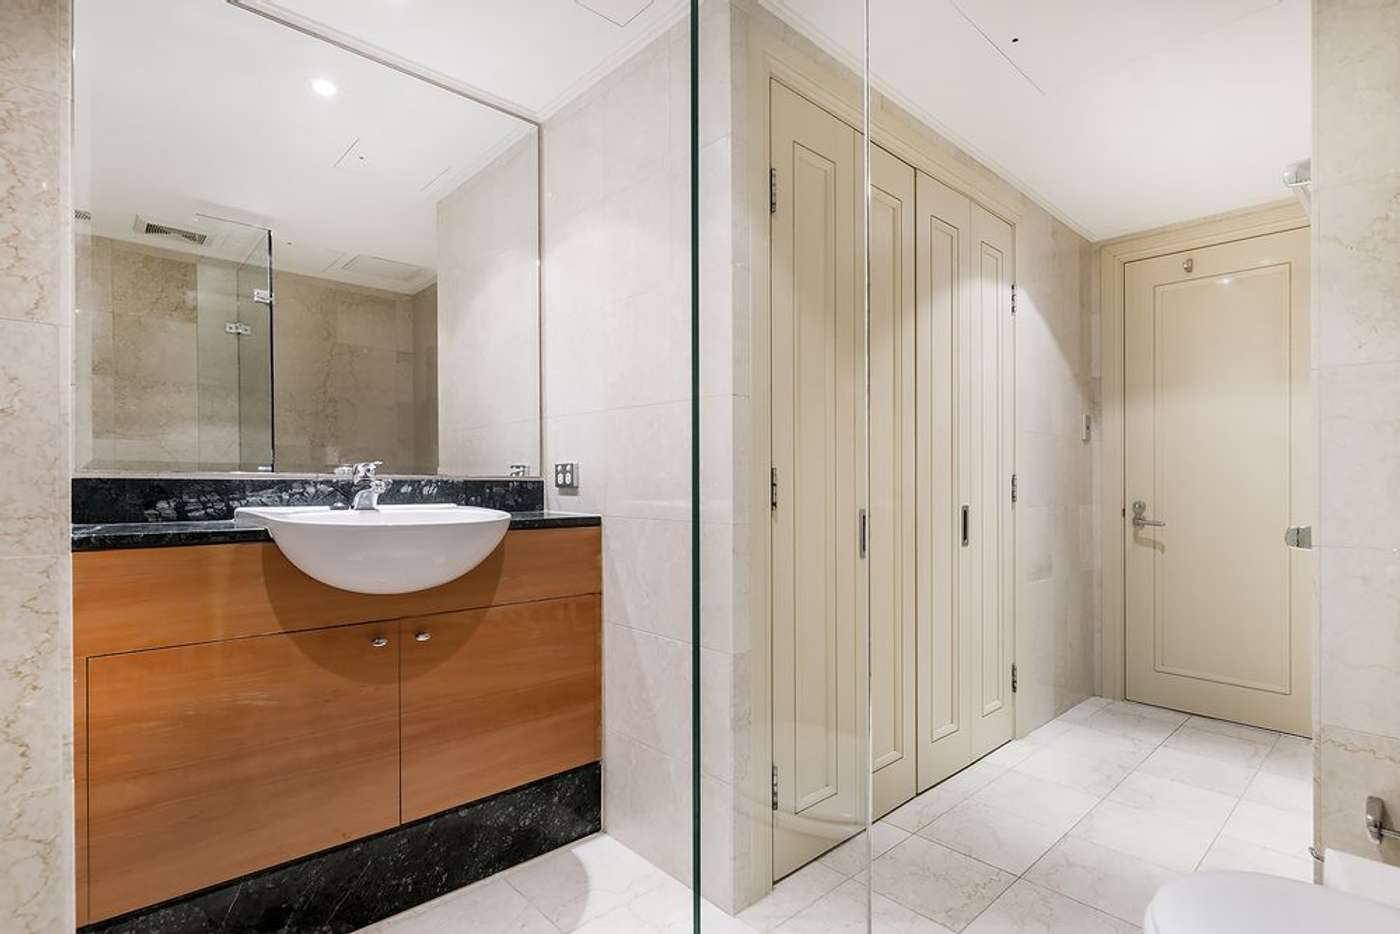 Fifth view of Homely apartment listing, 68-70 Market Street, Sydney NSW 2000